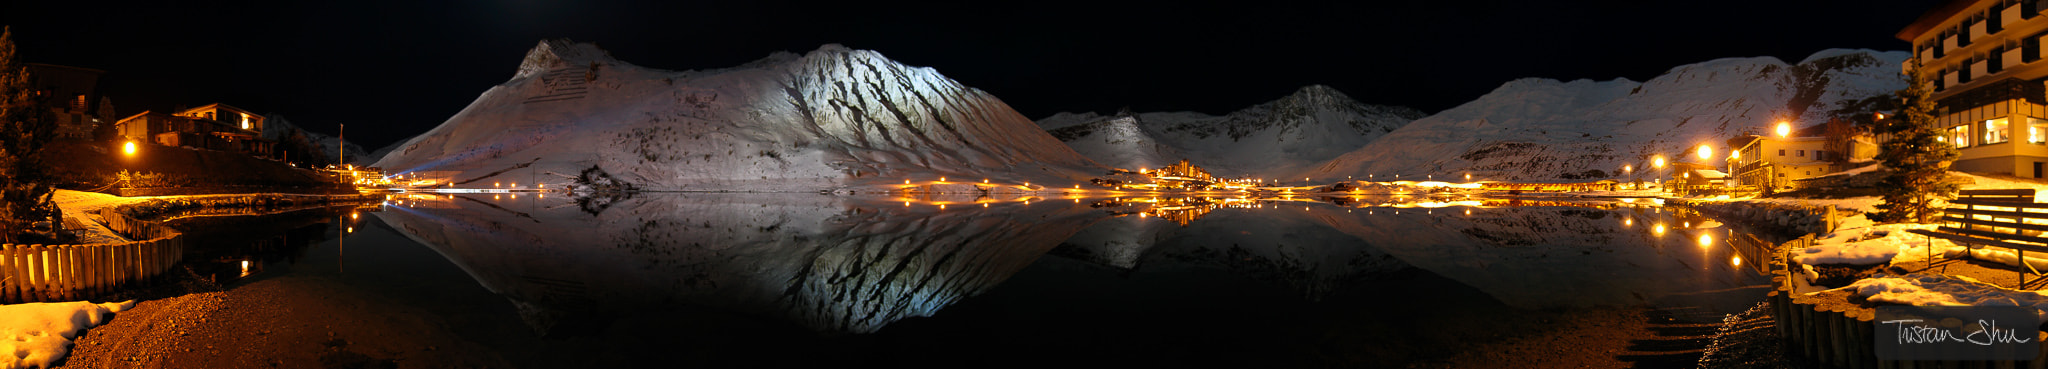 Photograph Night Reflections on the Tignes lake by Tristan Shu on 500px